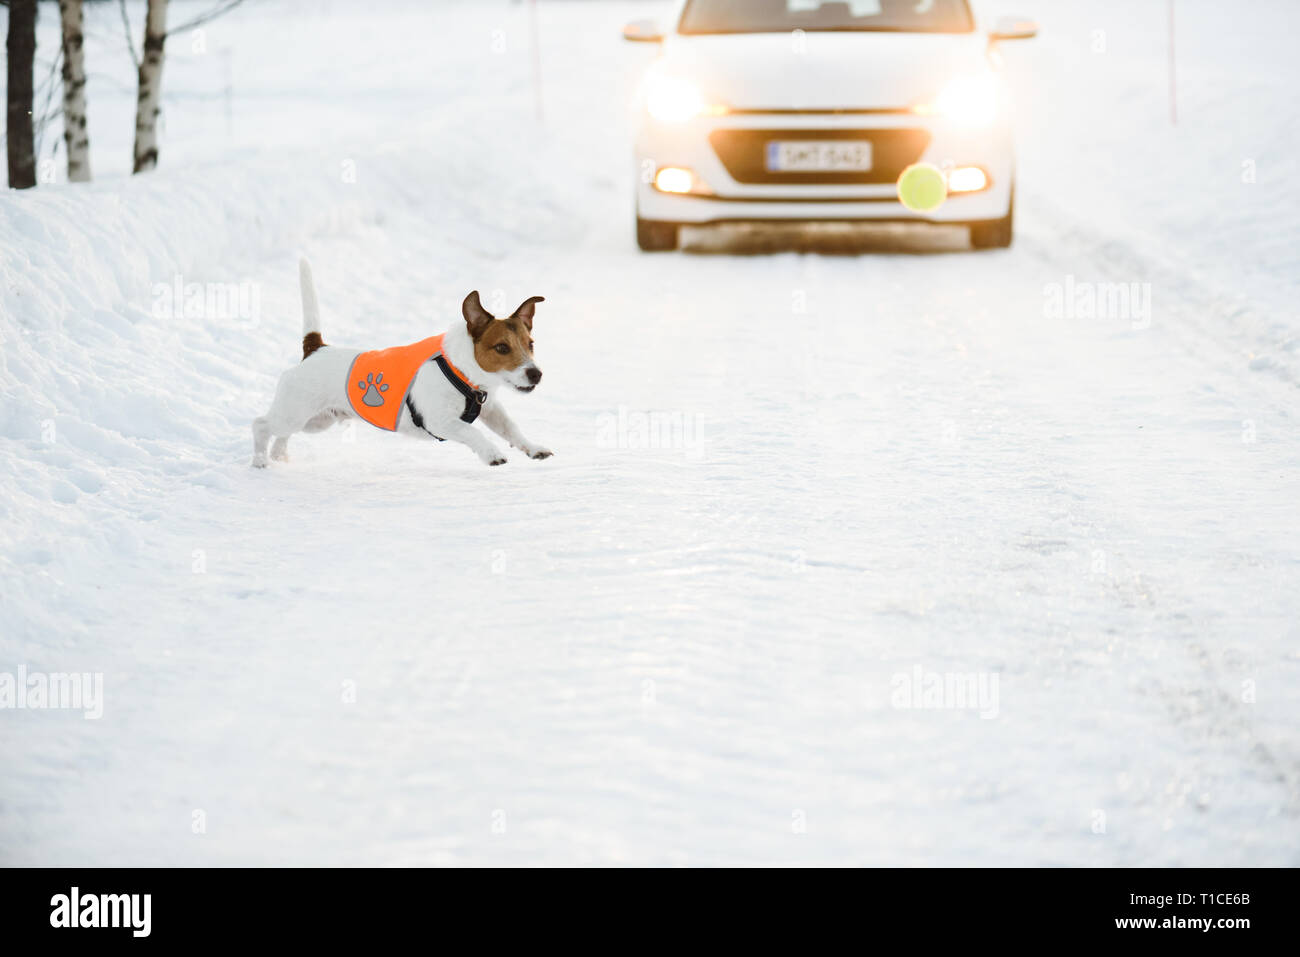 Road safety concept with dog wearing reflective vest runs at slippery roadway after ball in front of car - Stock Image